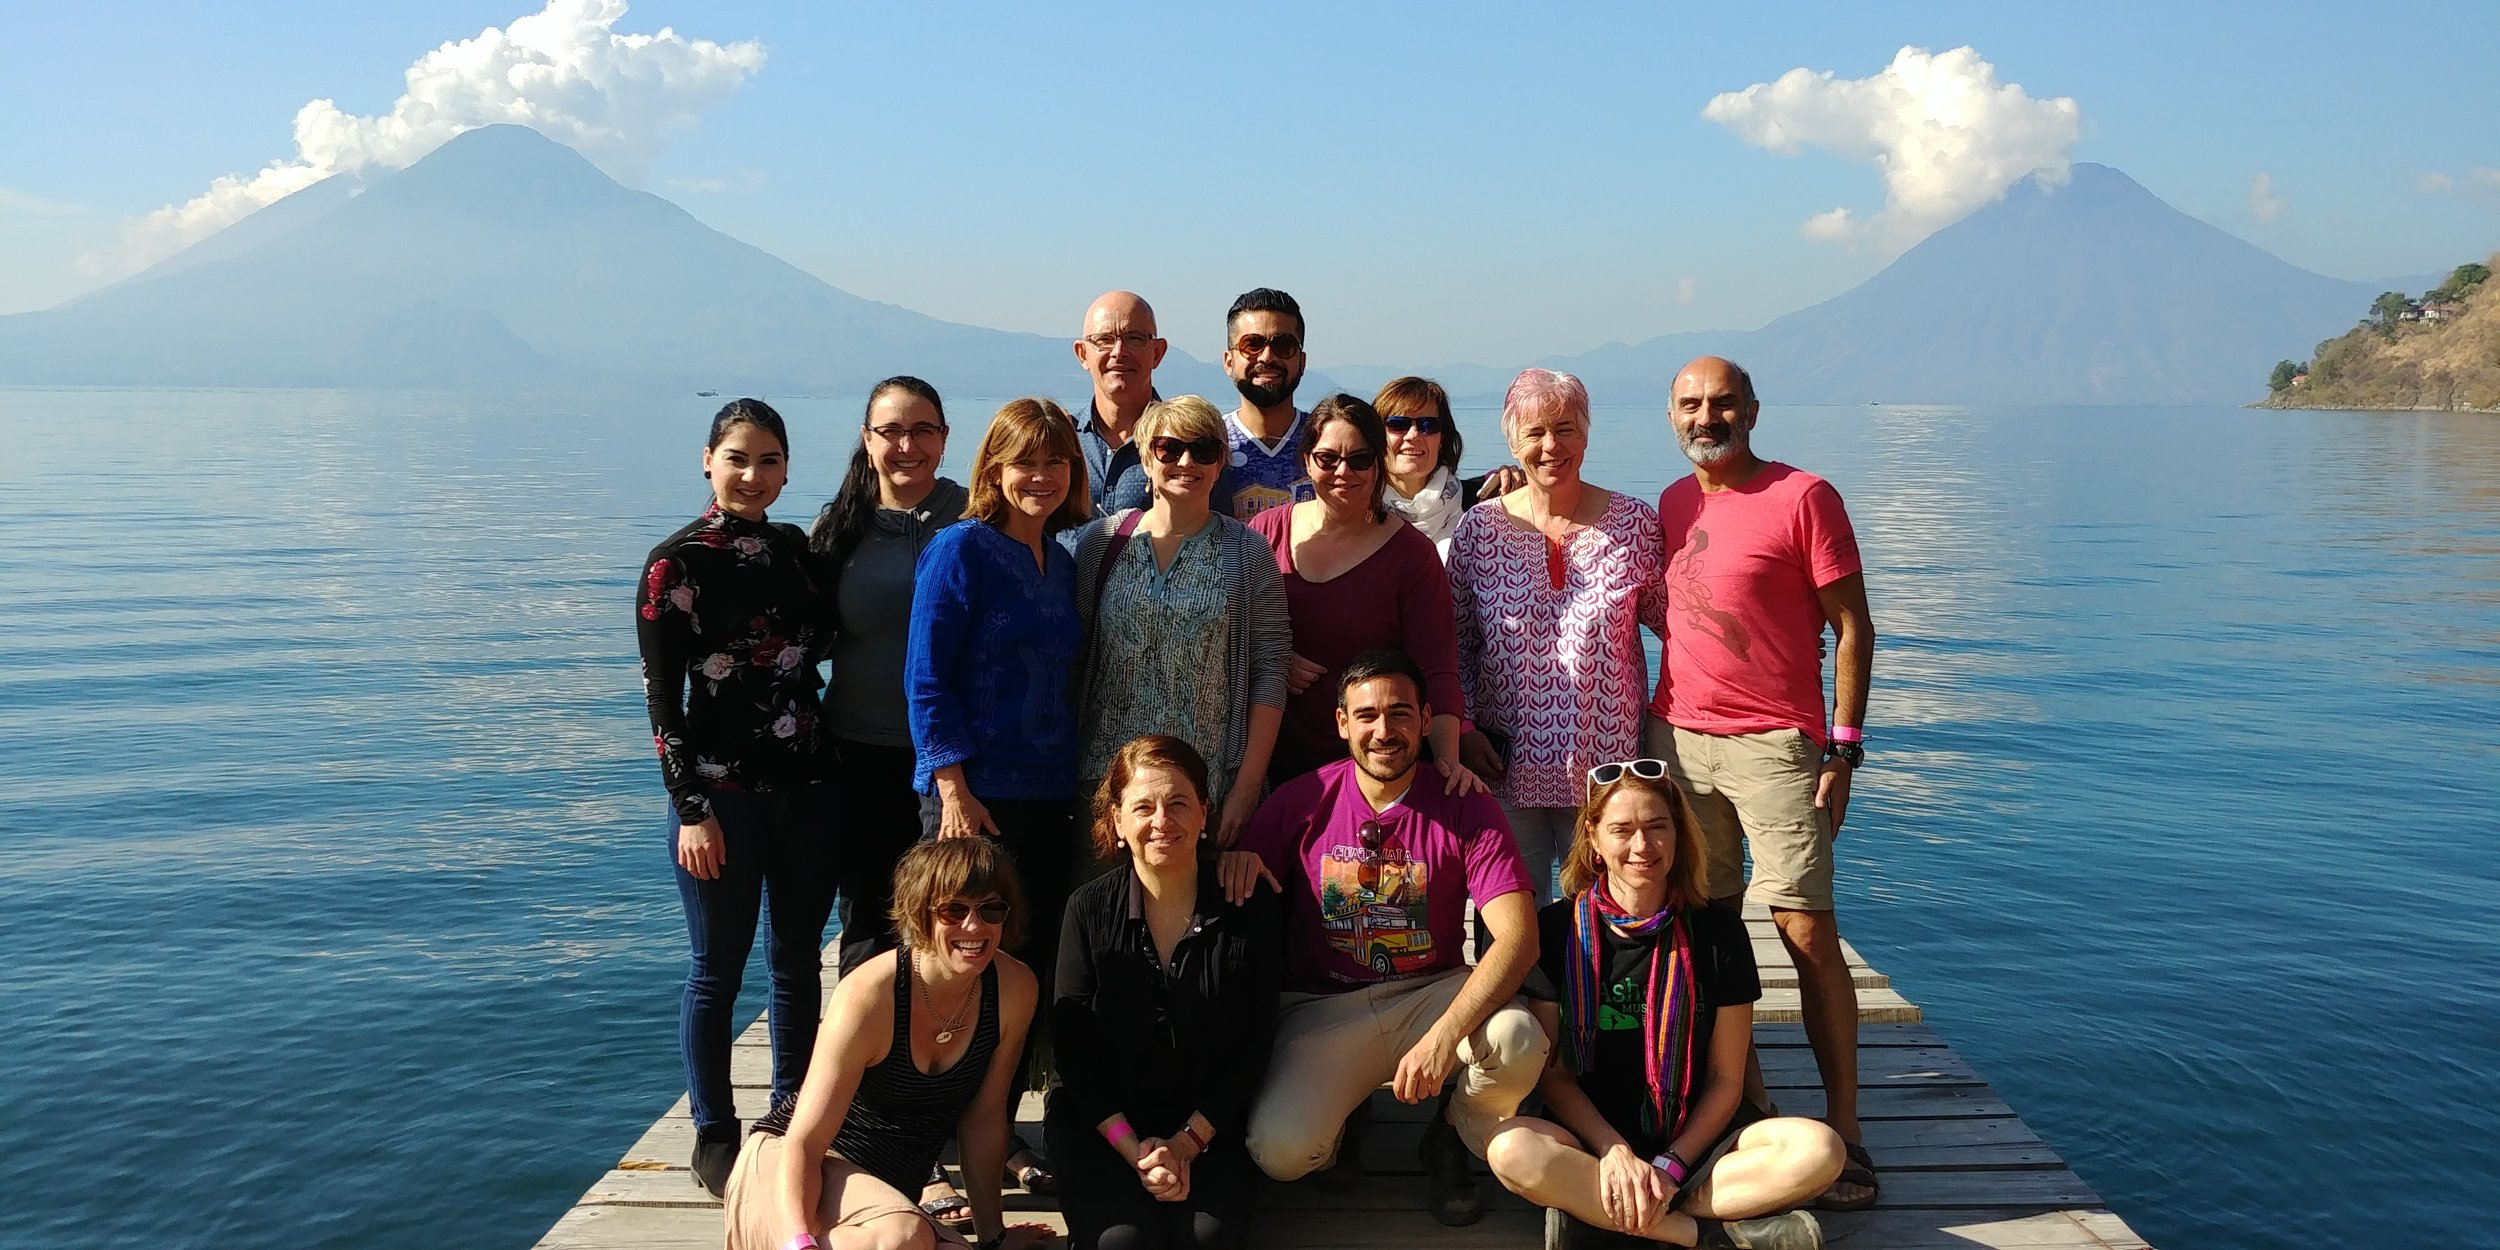 Former Canadian exchange participants in Panajachel, a town on the shores of Lake Atitlán